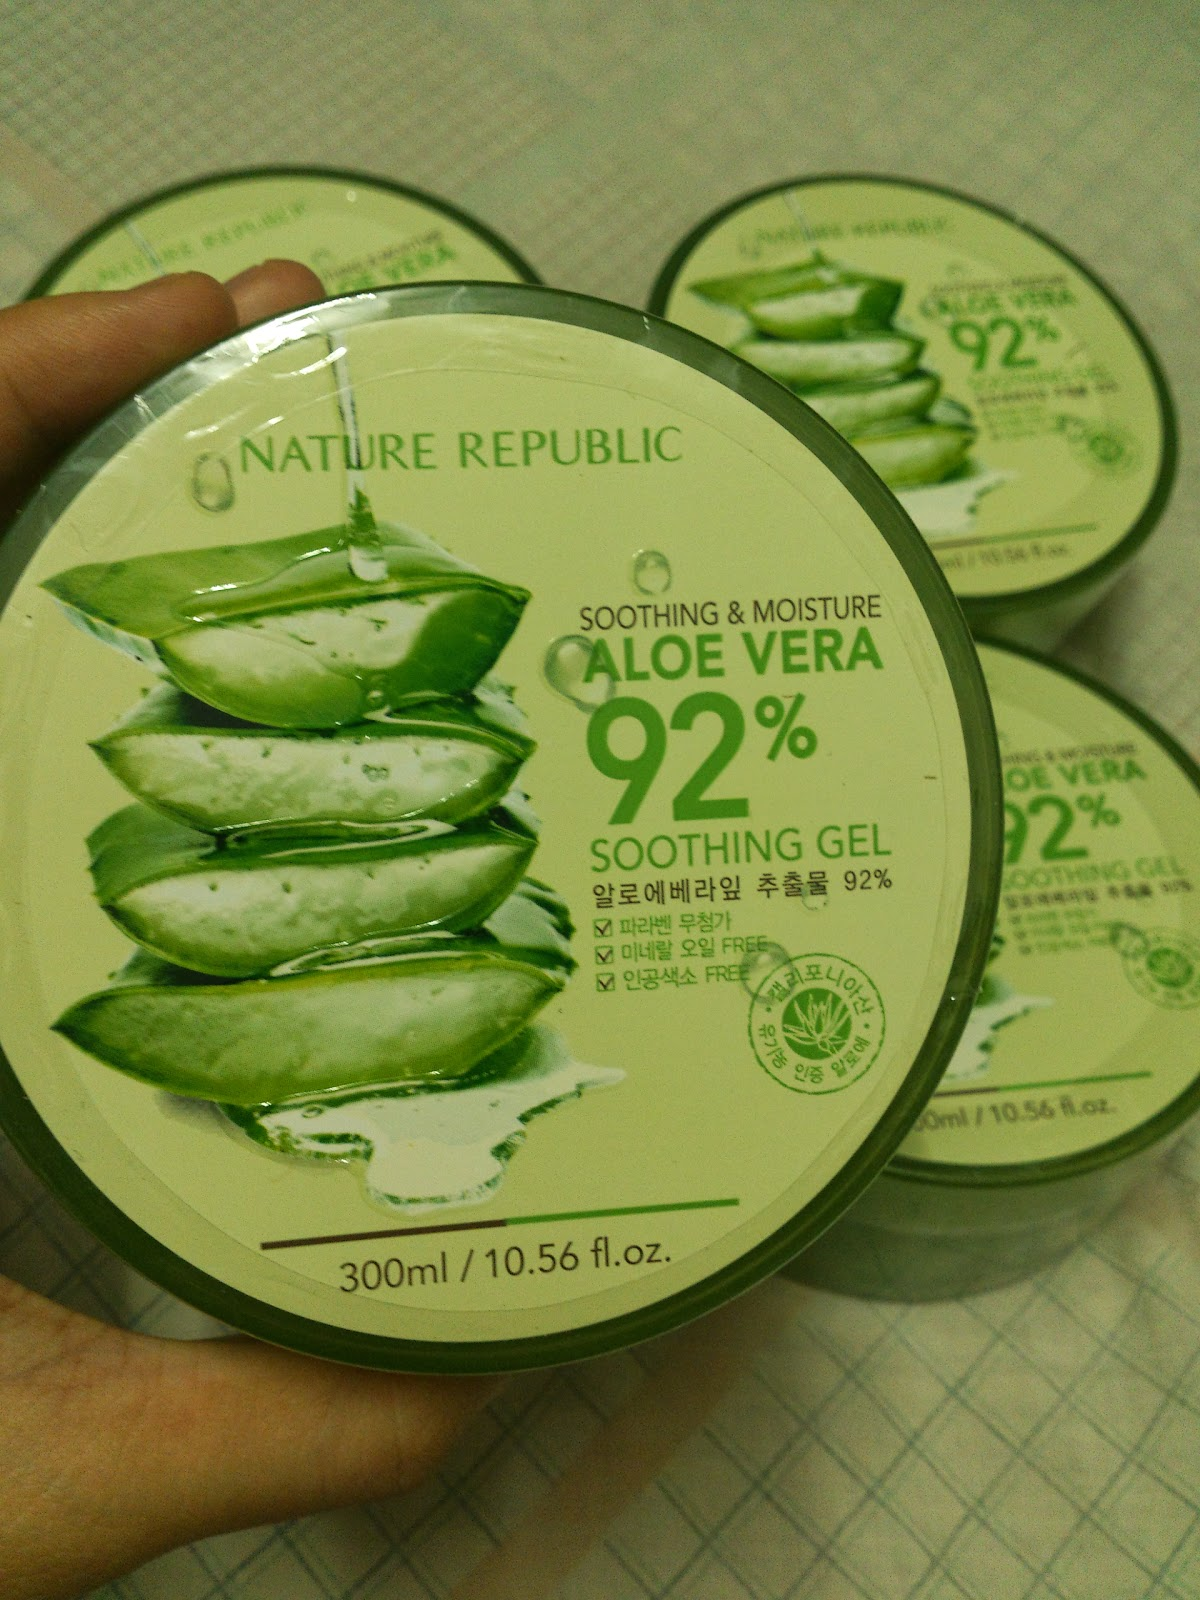 Nature republic soothing and moisture aloe vera 92 soothing gel 300ml - It Containing 92 Real Aloe That Calms And Moisturizes Our Skin With Mild Feeling And Quick Absorption High Absorbency Moisturizing